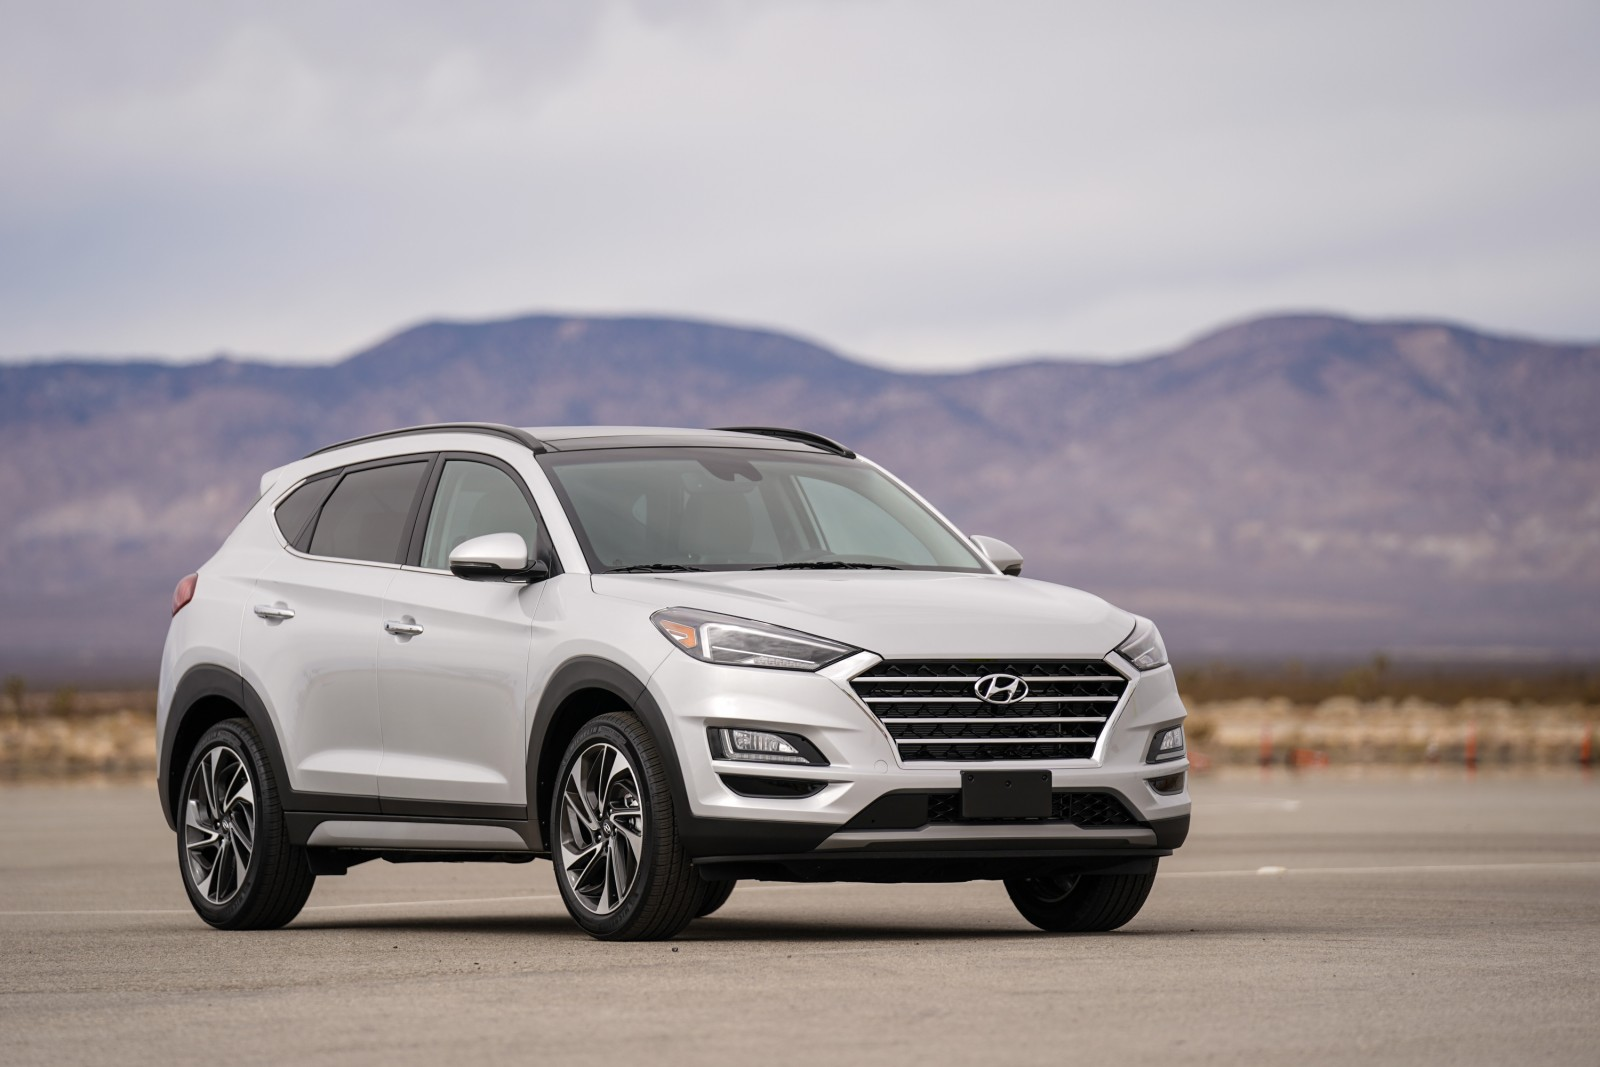 hyundai tucson receives significant refresh for 2019 model year openroad auto group. Black Bedroom Furniture Sets. Home Design Ideas